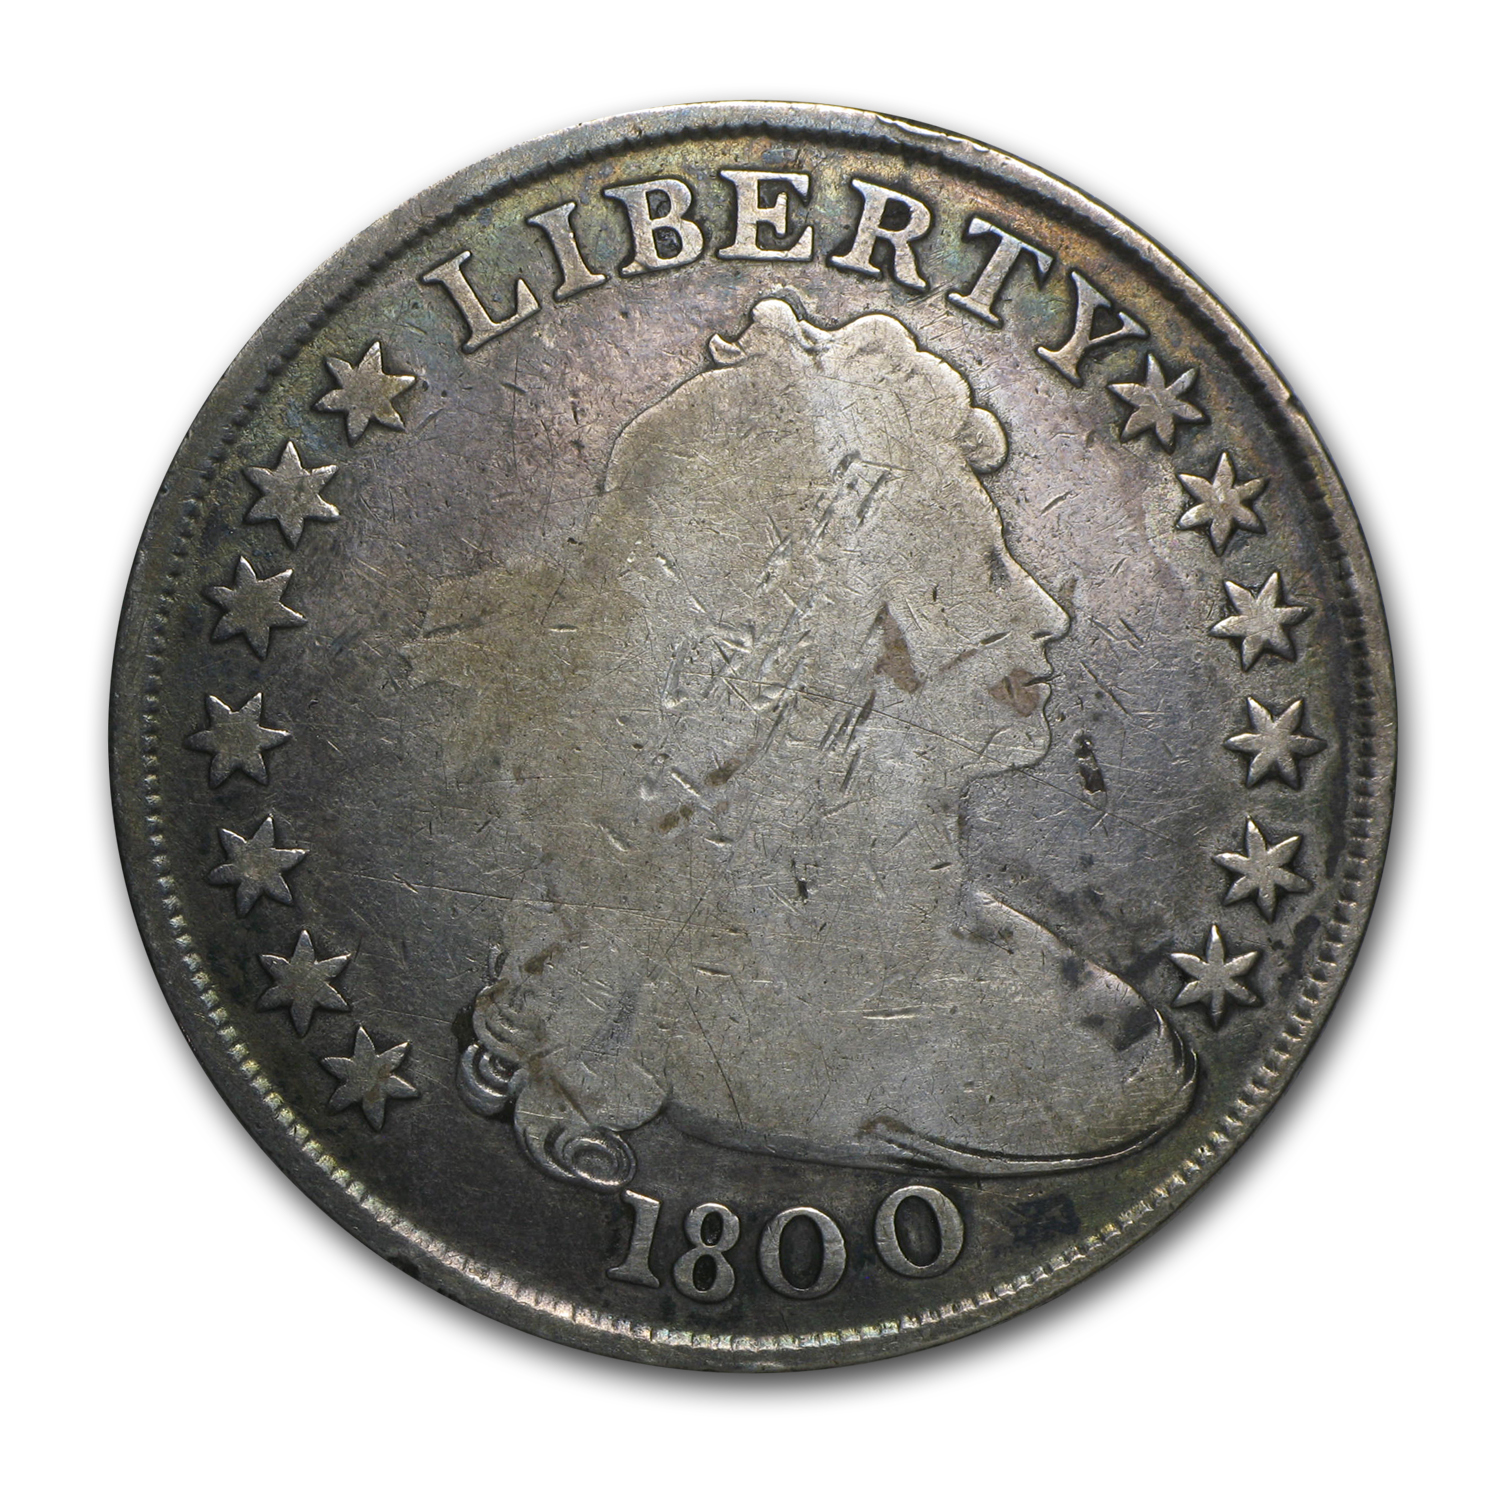 1800 Draped Bust Dollar - Good Details - Scratched